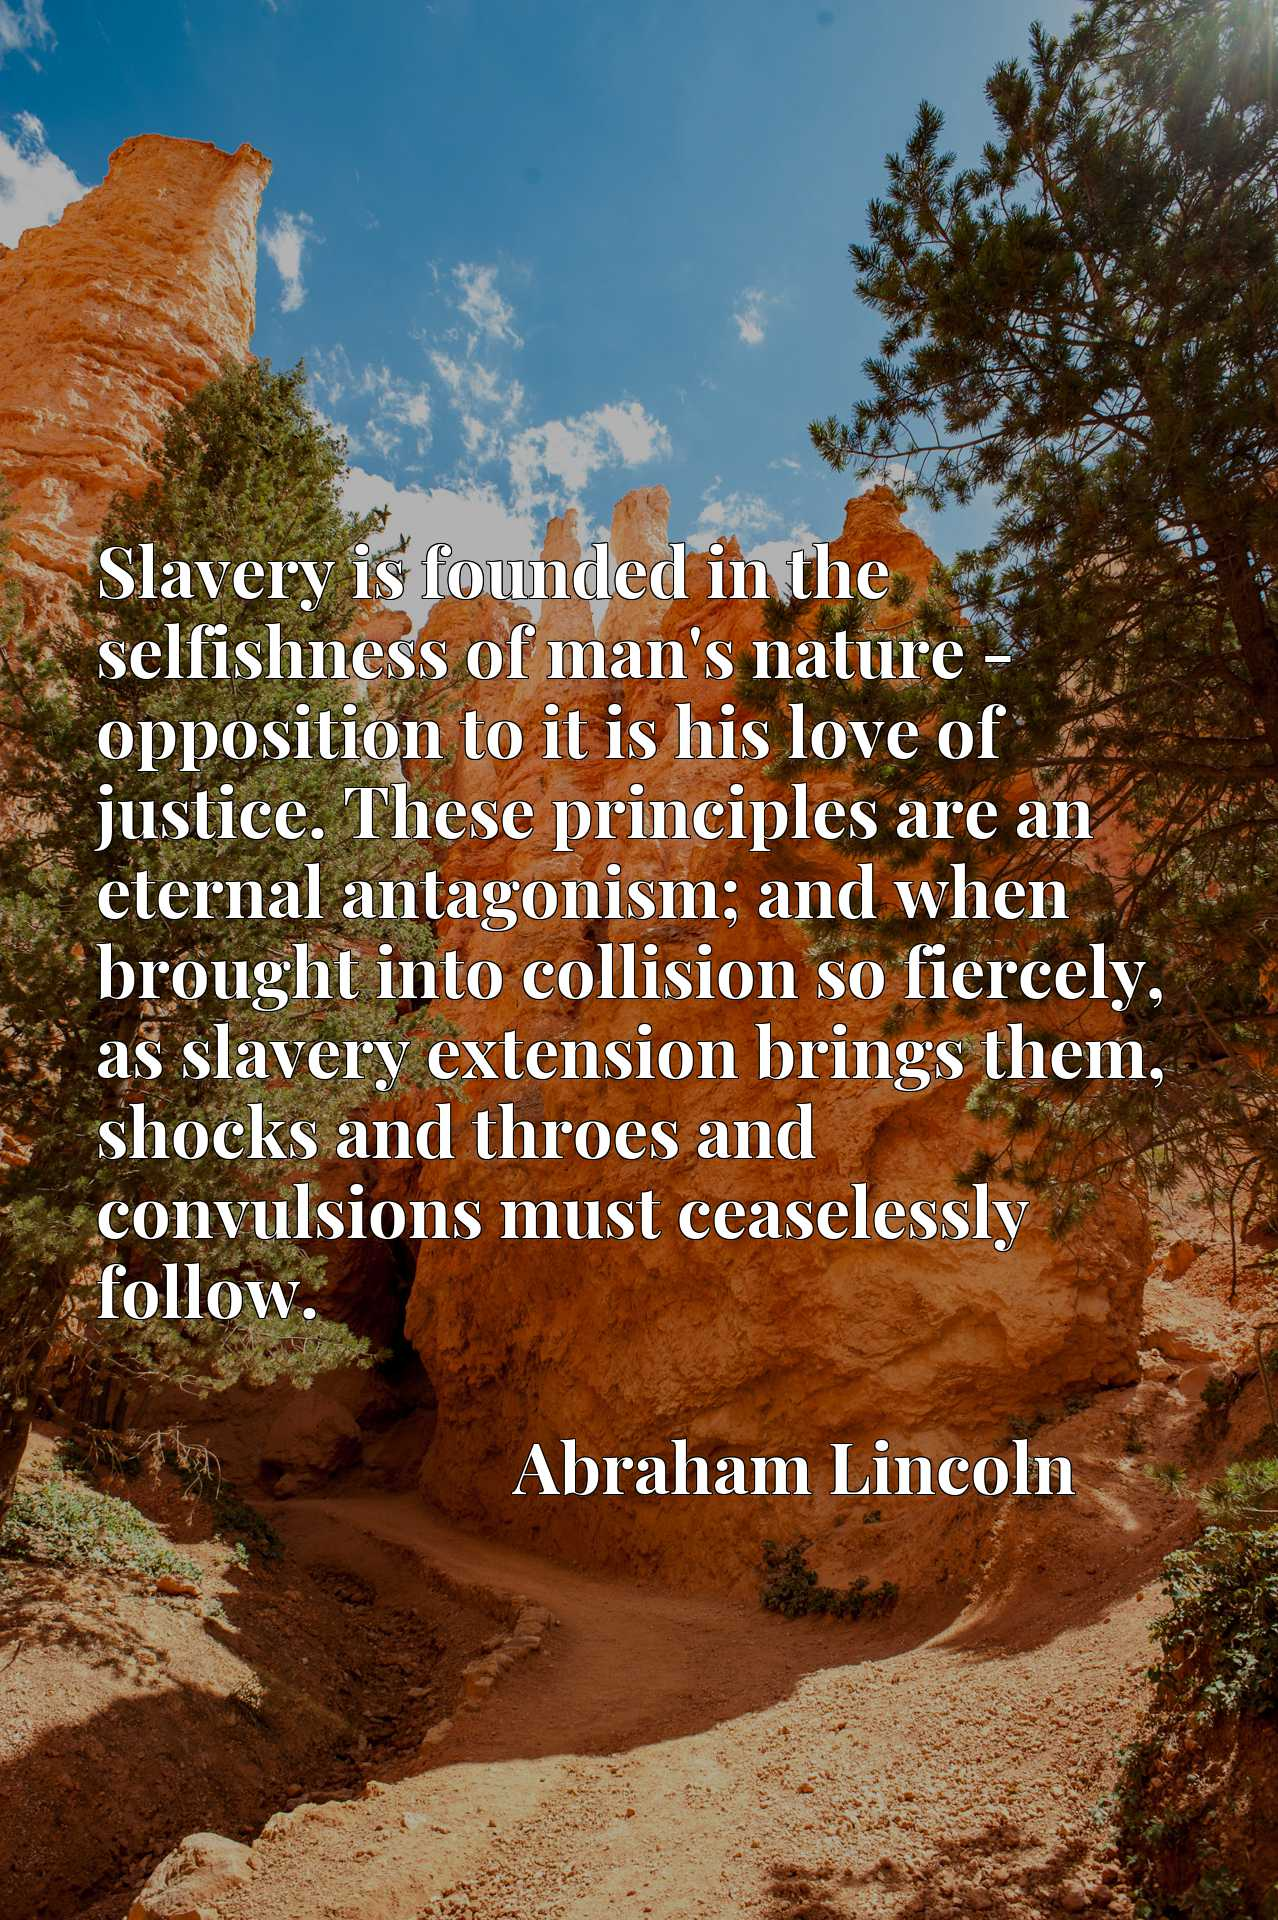 Quote Picture :Slavery is founded in the selfishness of man's nature - opposition to it is his love of justice. These principles are an eternal antagonism; and when brought into collision so fiercely, as slavery extension brings them, shocks and throes and convulsions must ceaselessly follow.